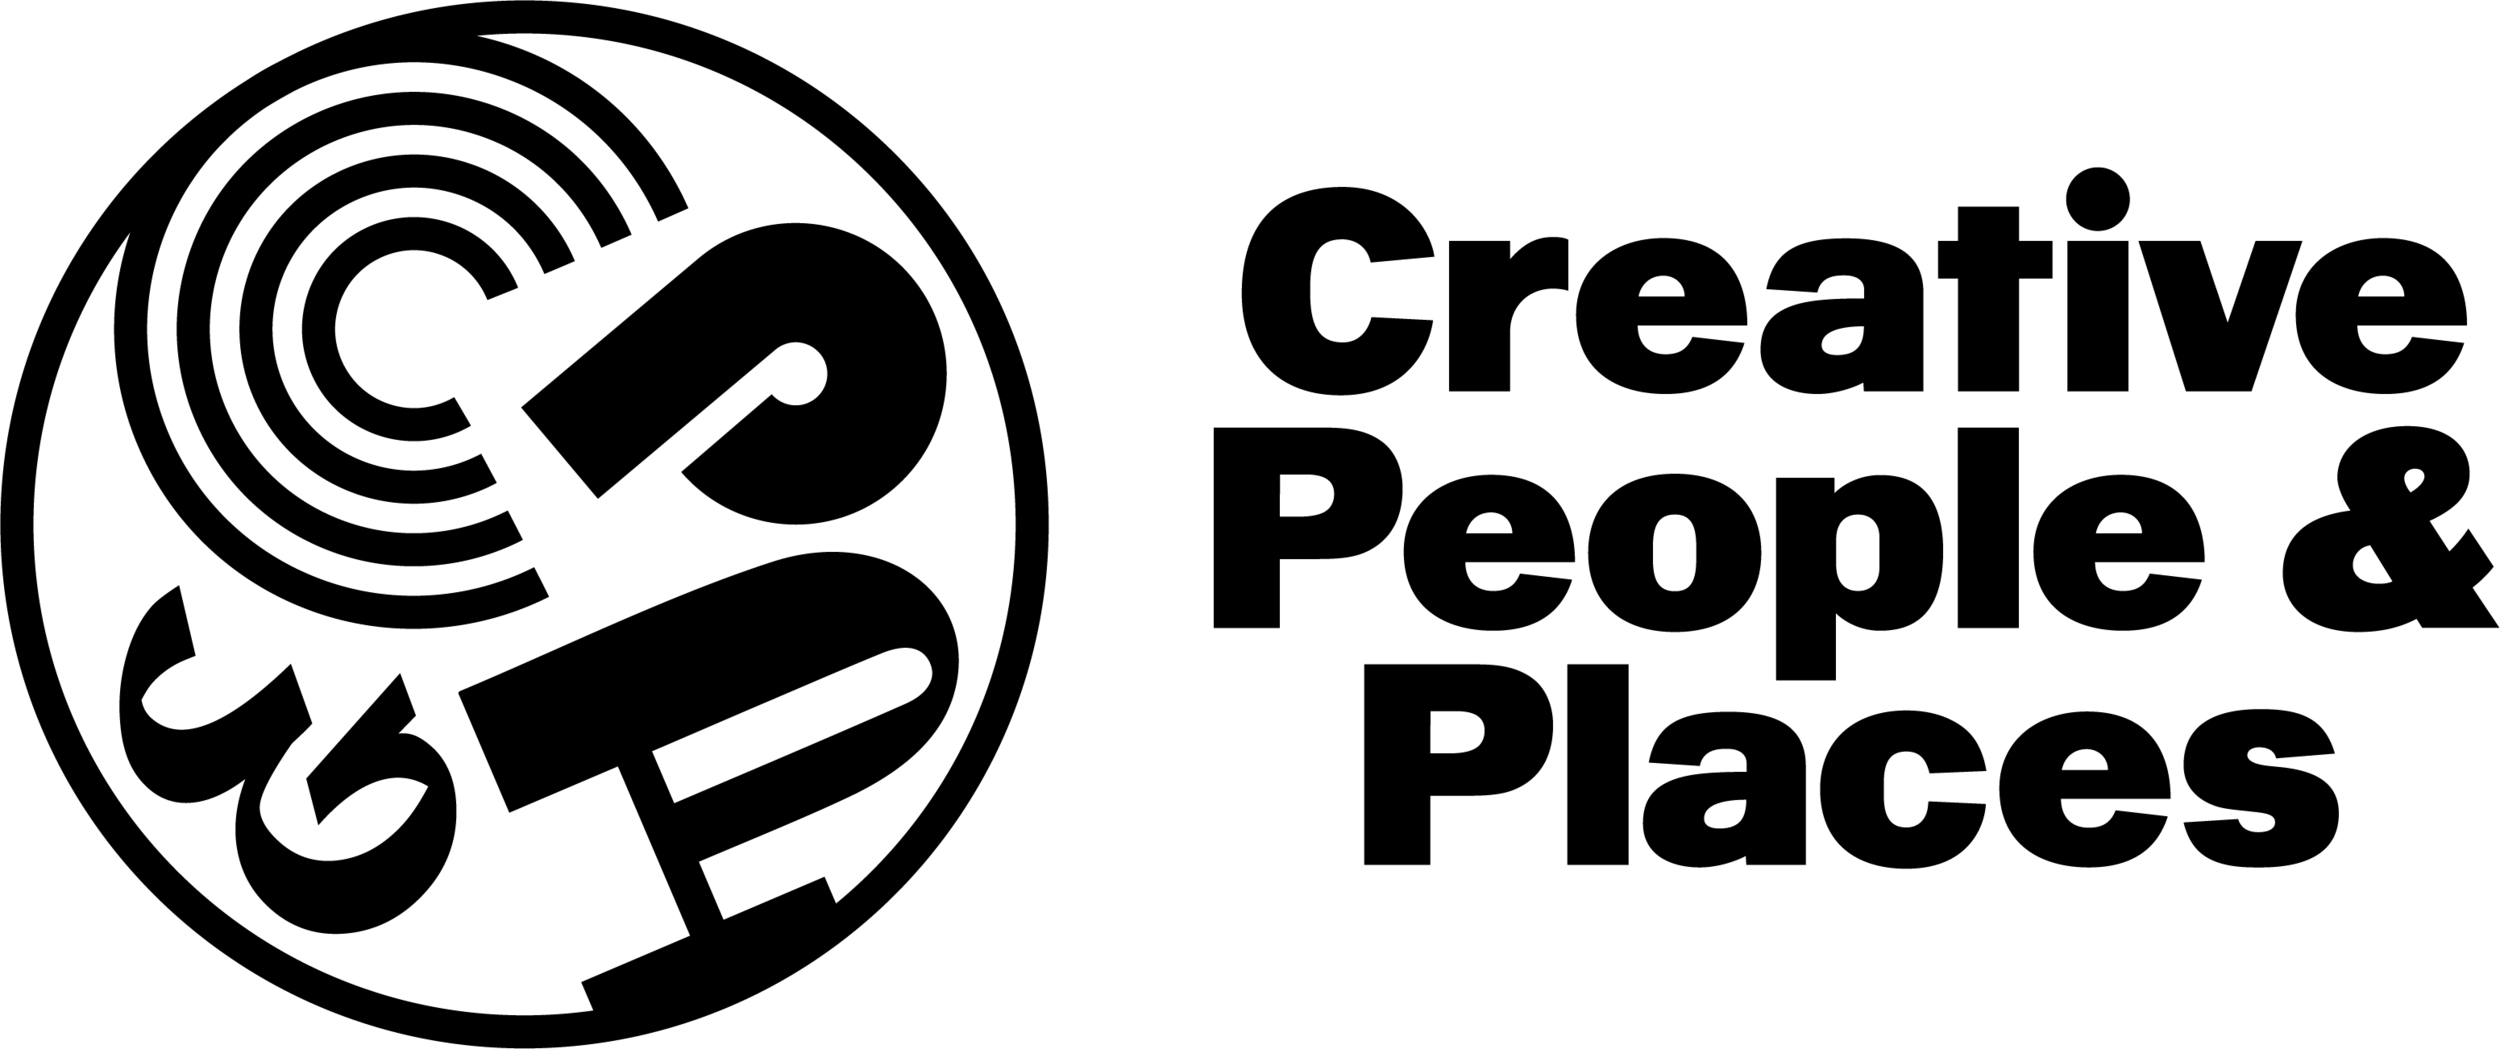 CPP-LOGO-OUTLINE-HORIZONTAL-WHITE.png